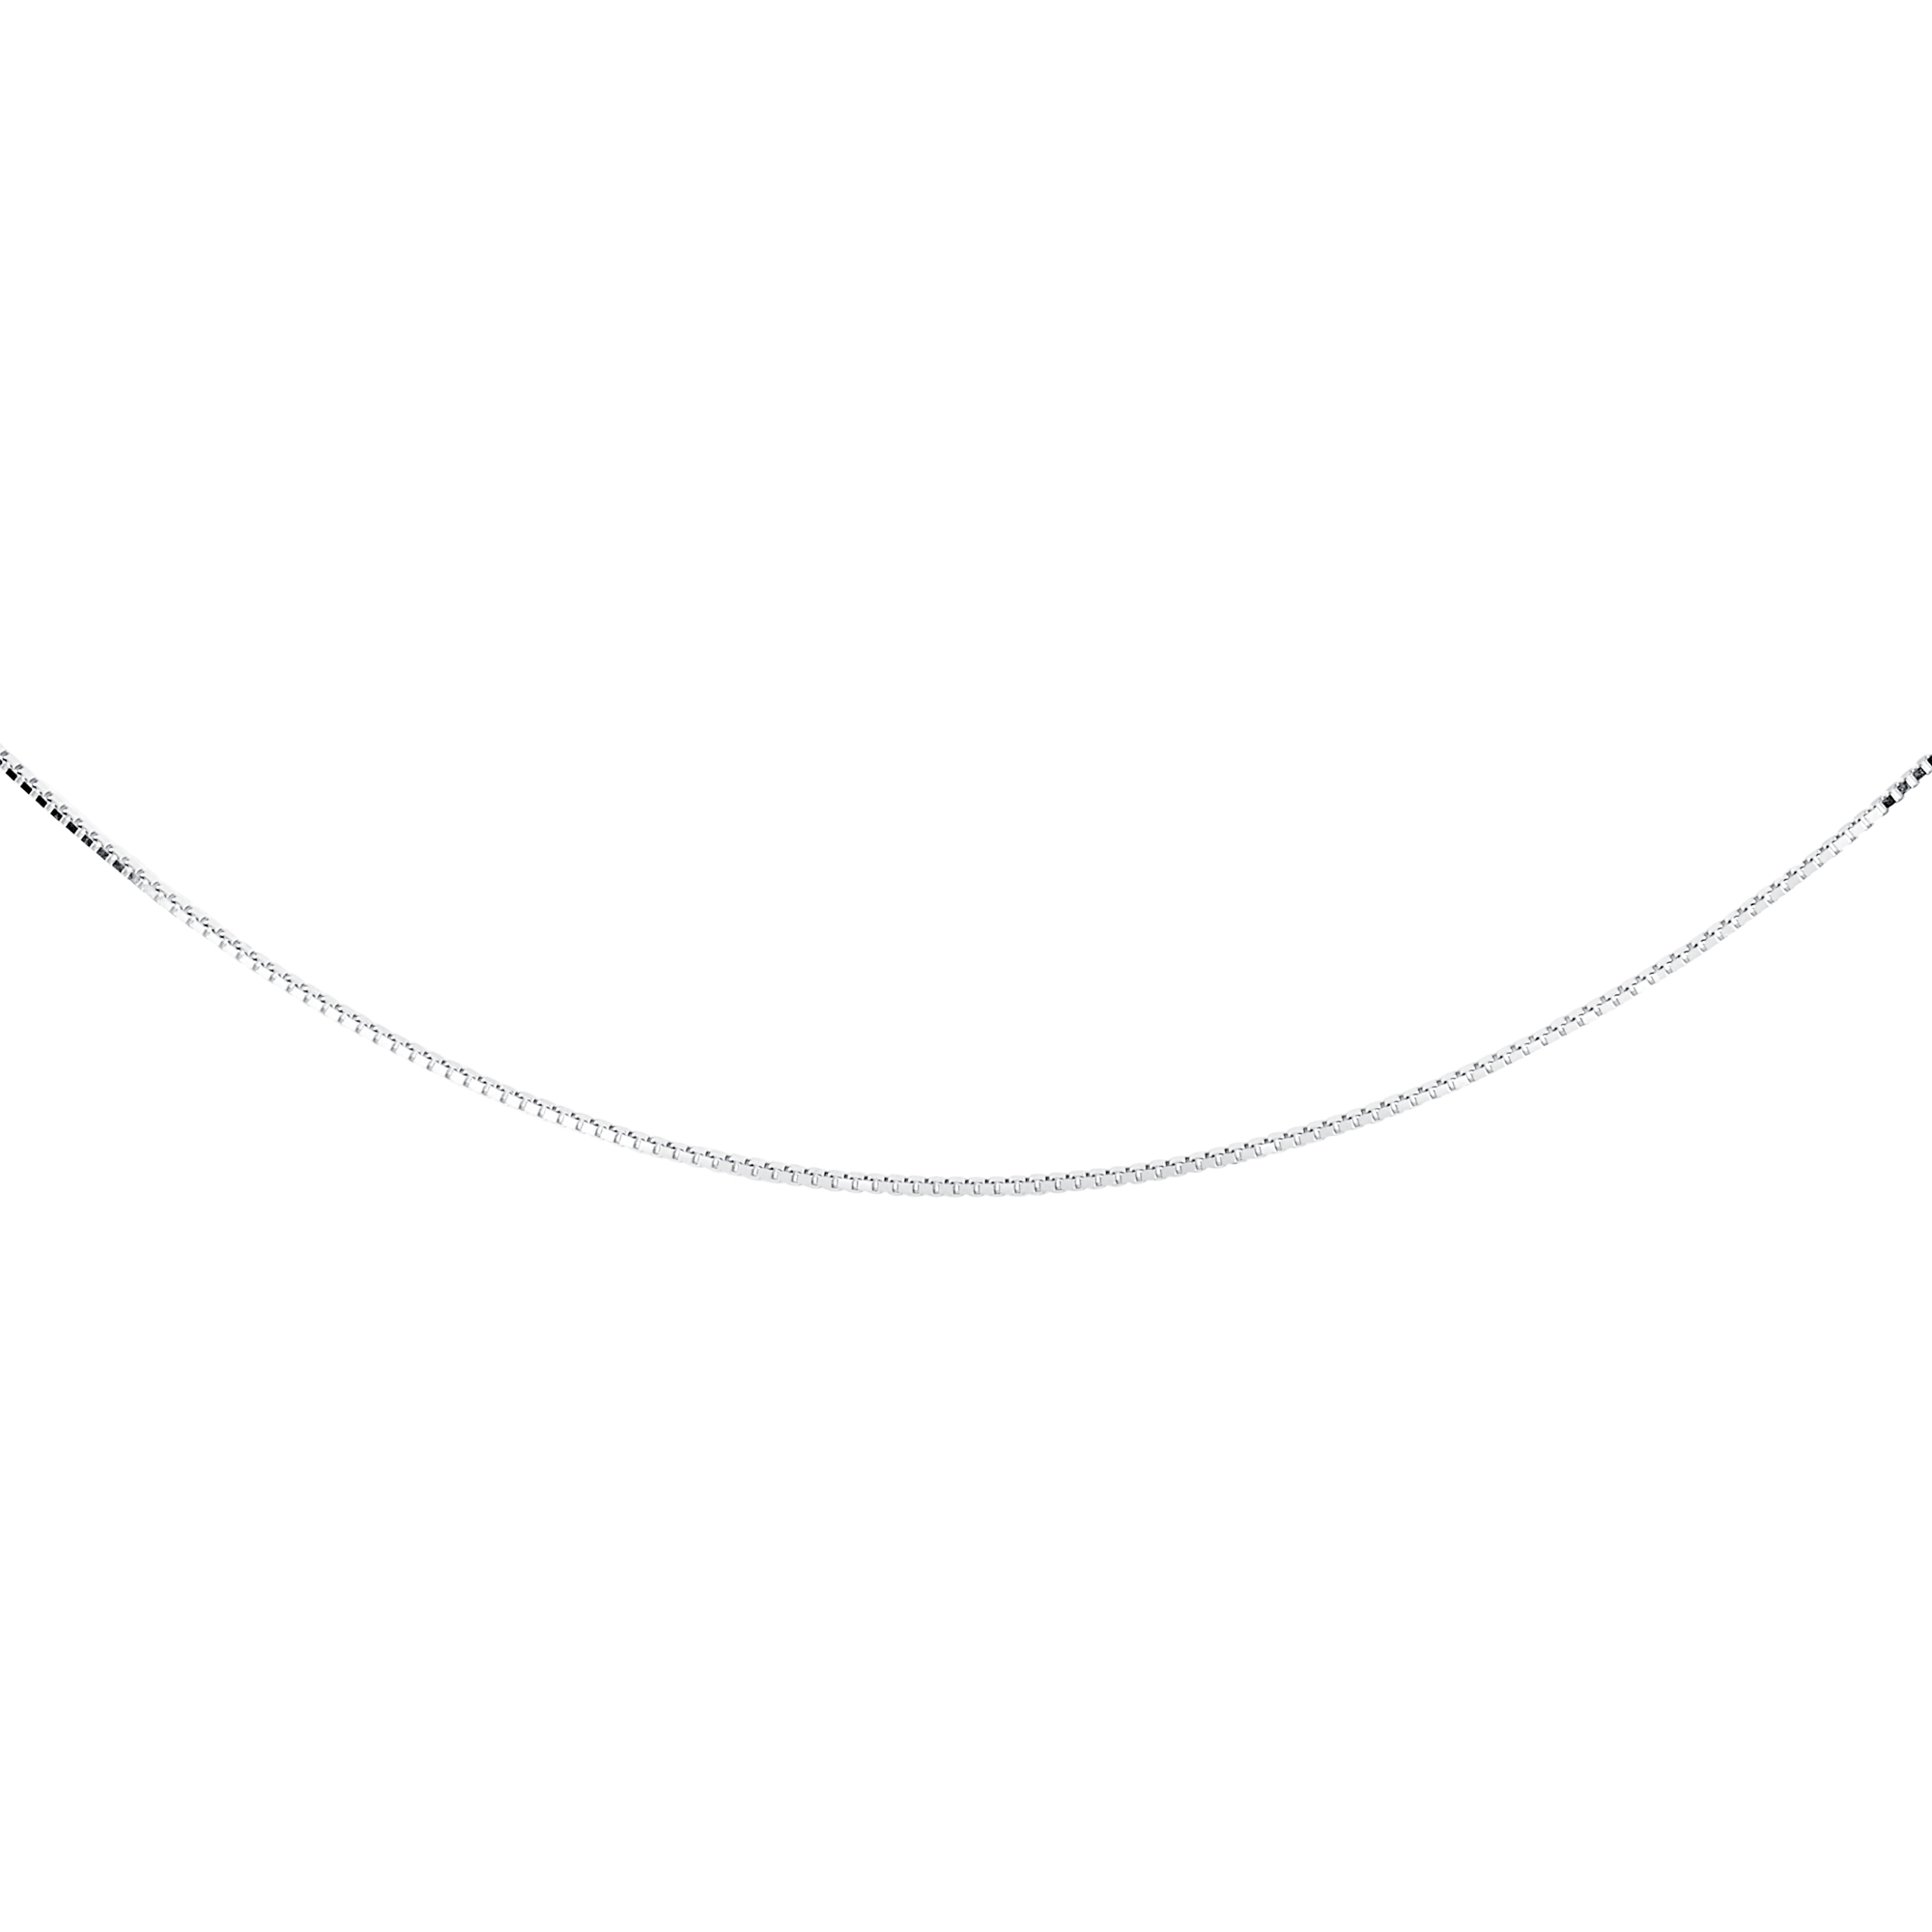 20'' box chain - Sterling silver & rhodium plated finish